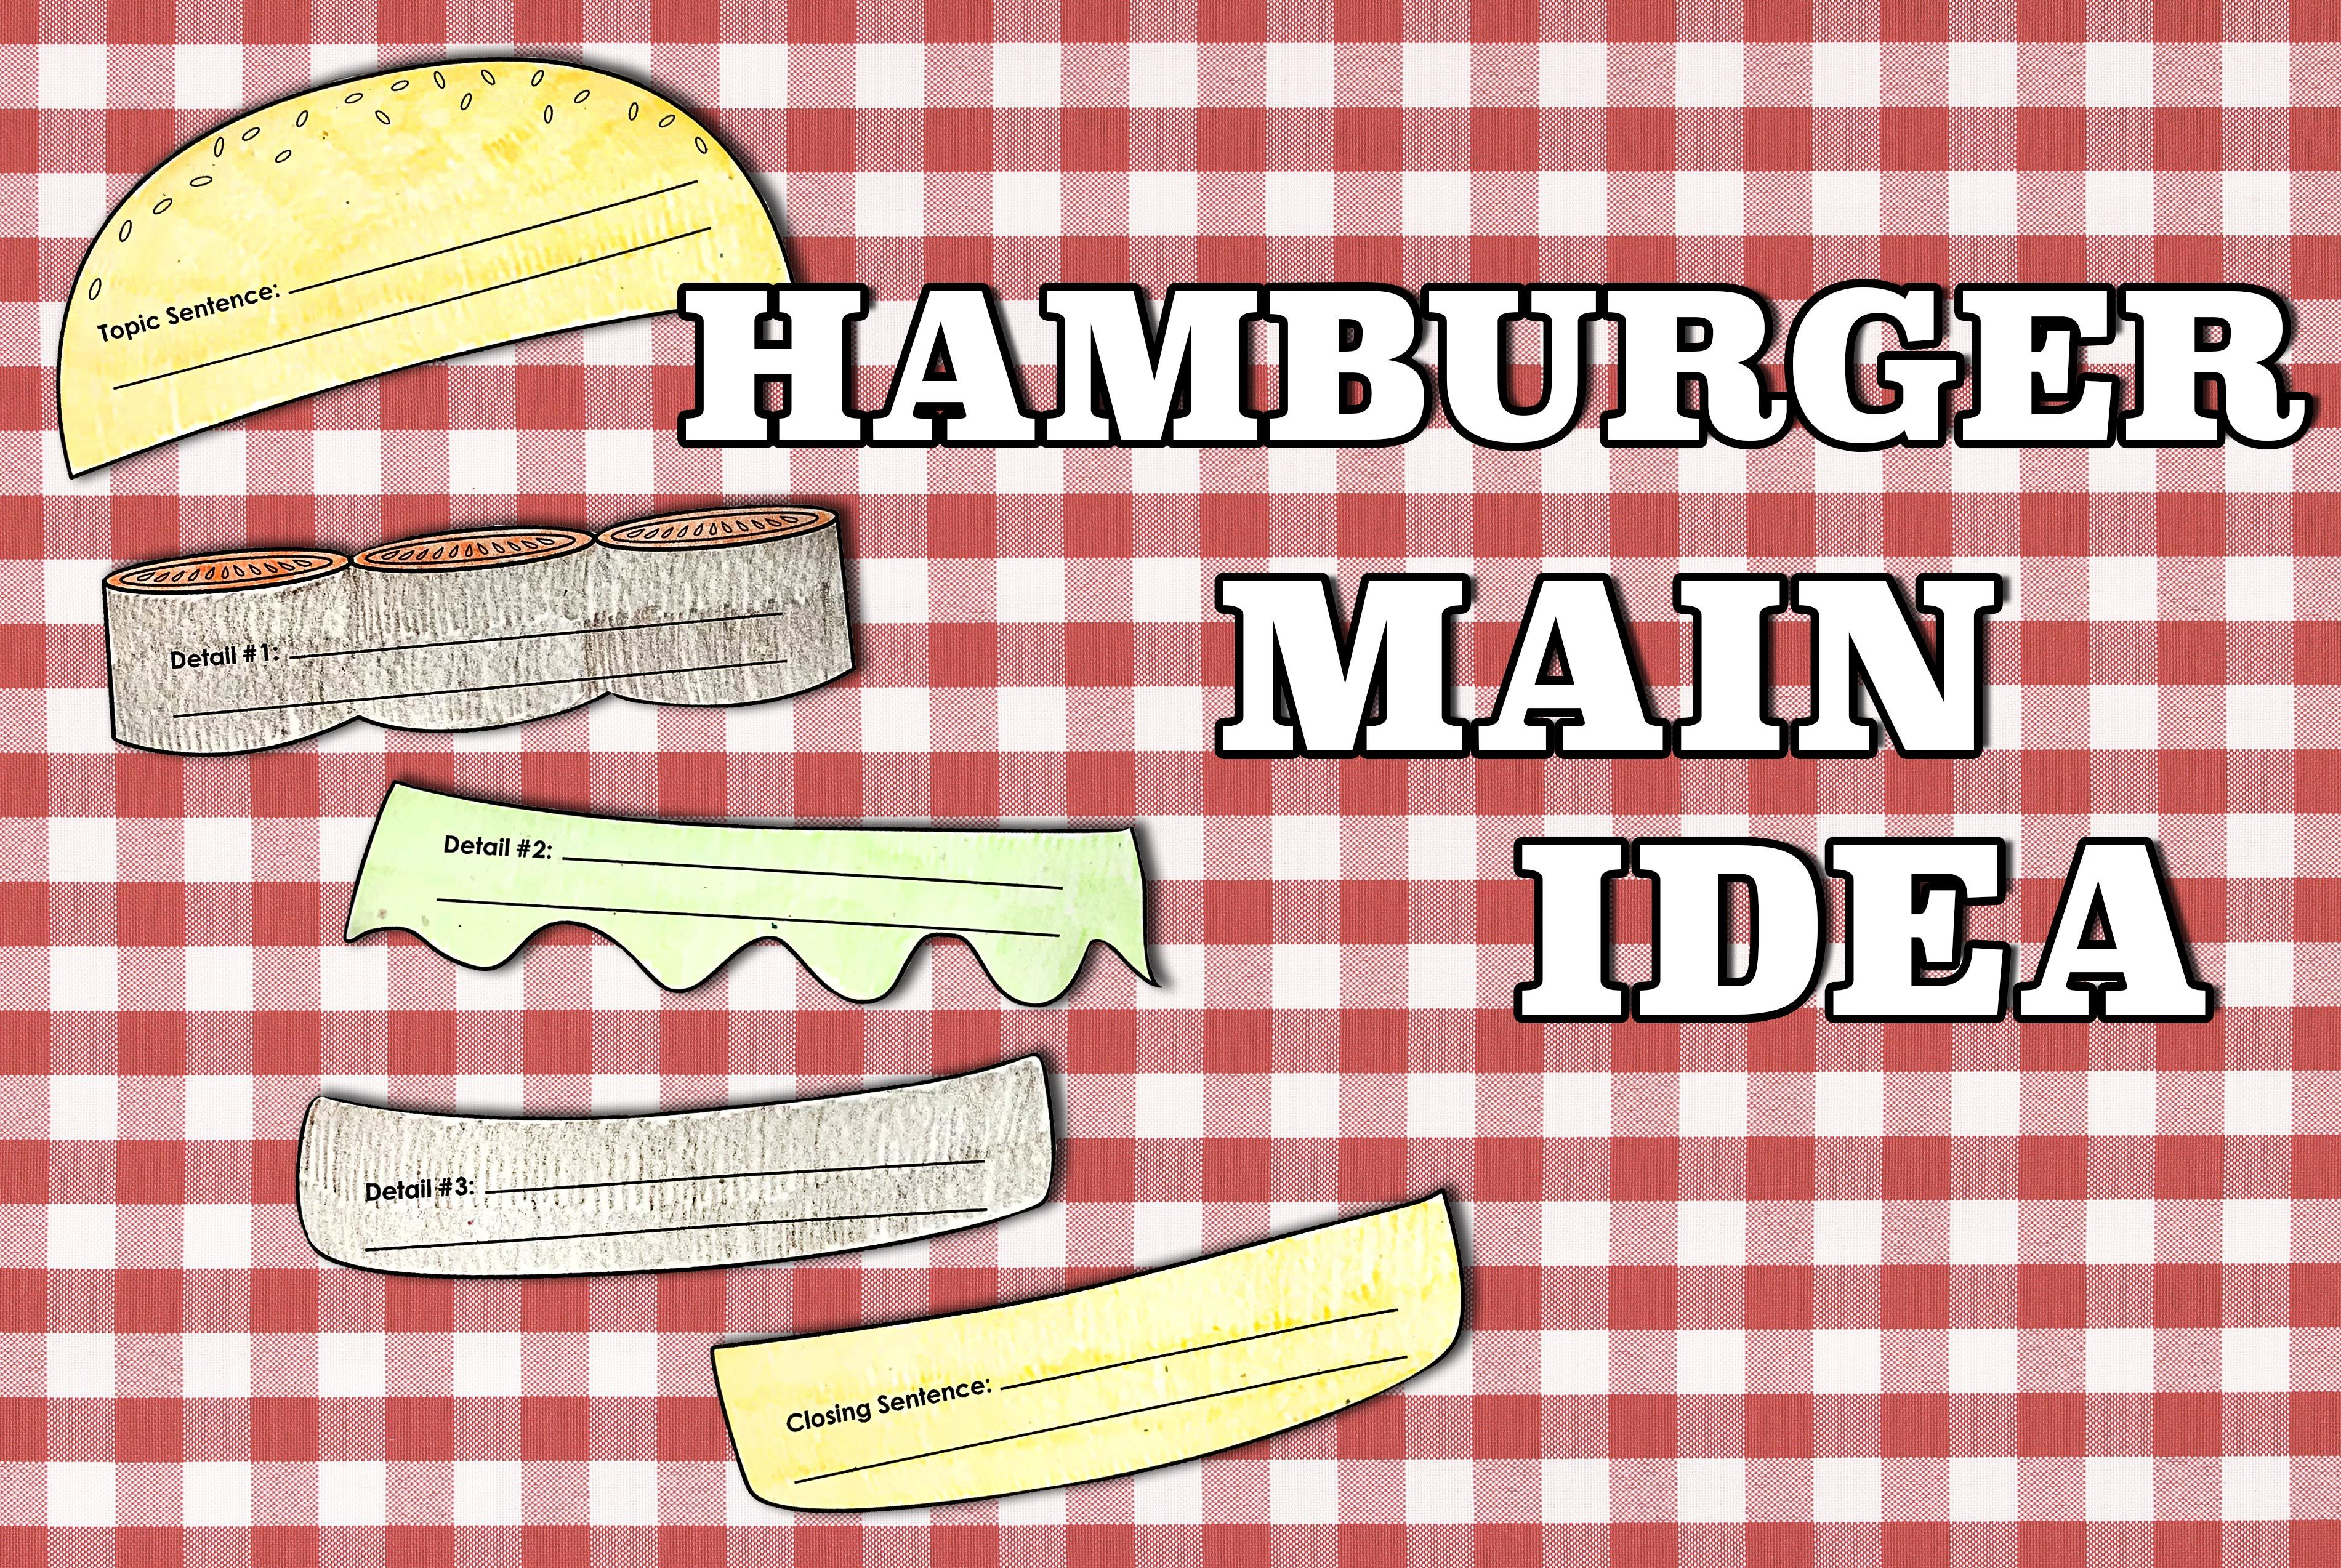 What Do Hamburgers Flowers And Robots Have In Common They Re All Main Idea Organizers Available On Main Idea Worksheet Super Teacher Worksheets Worksheets [ 2547 x 3802 Pixel ]